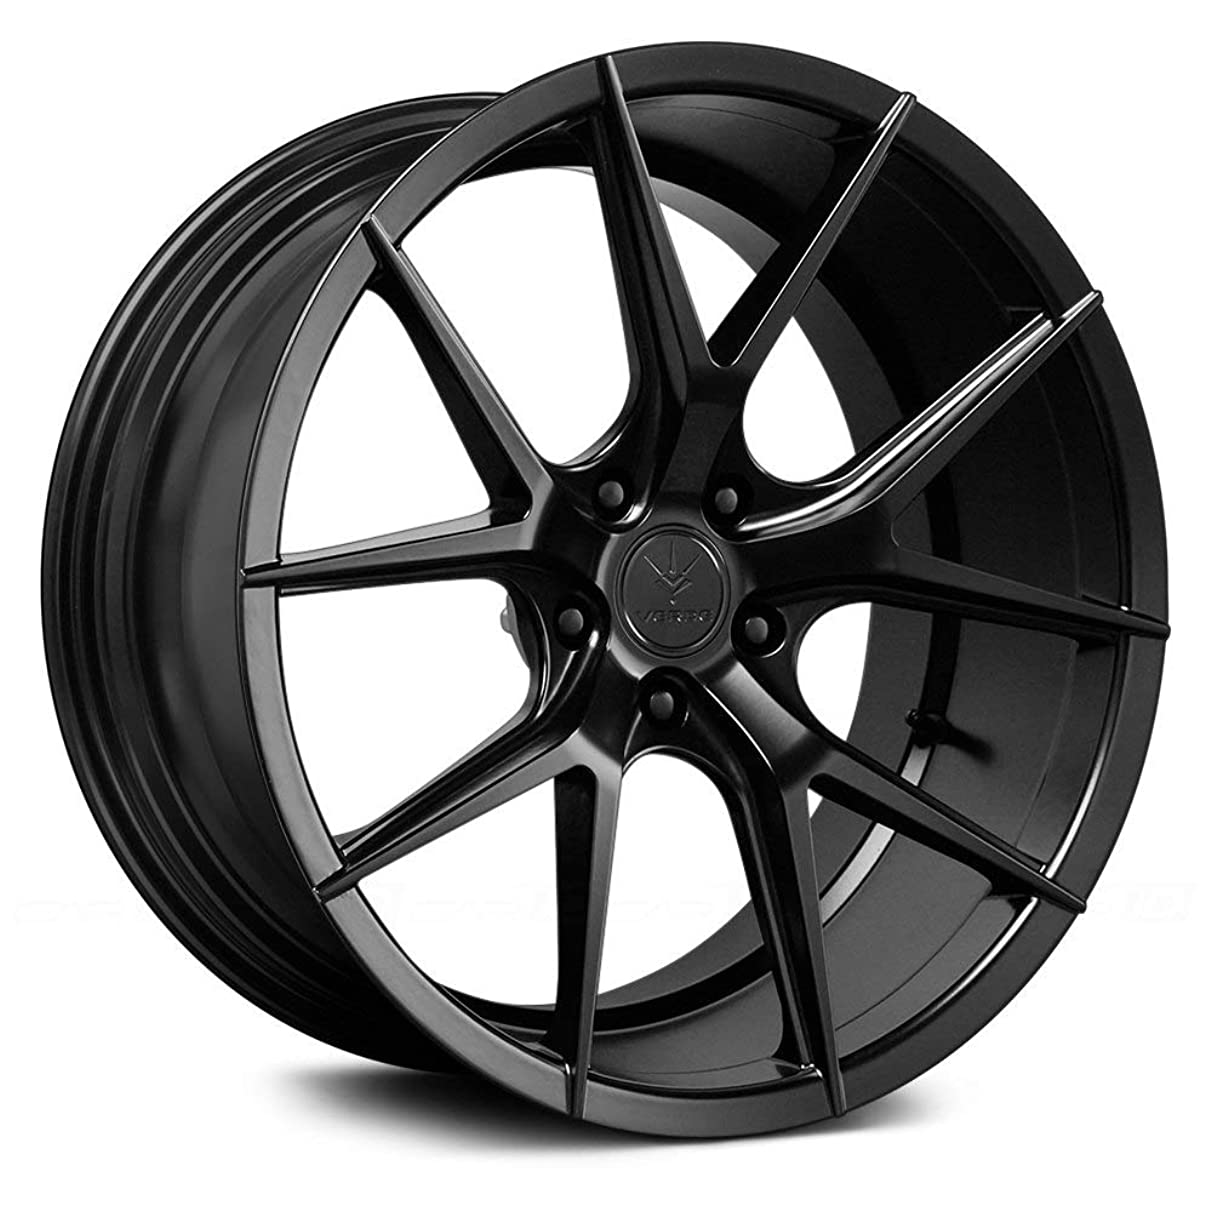 Verde Custom Wheels Axis Satin Black Wheel with Painted Finish (20 x 9. inches /5 x 120 mm, 35 mm Offset)